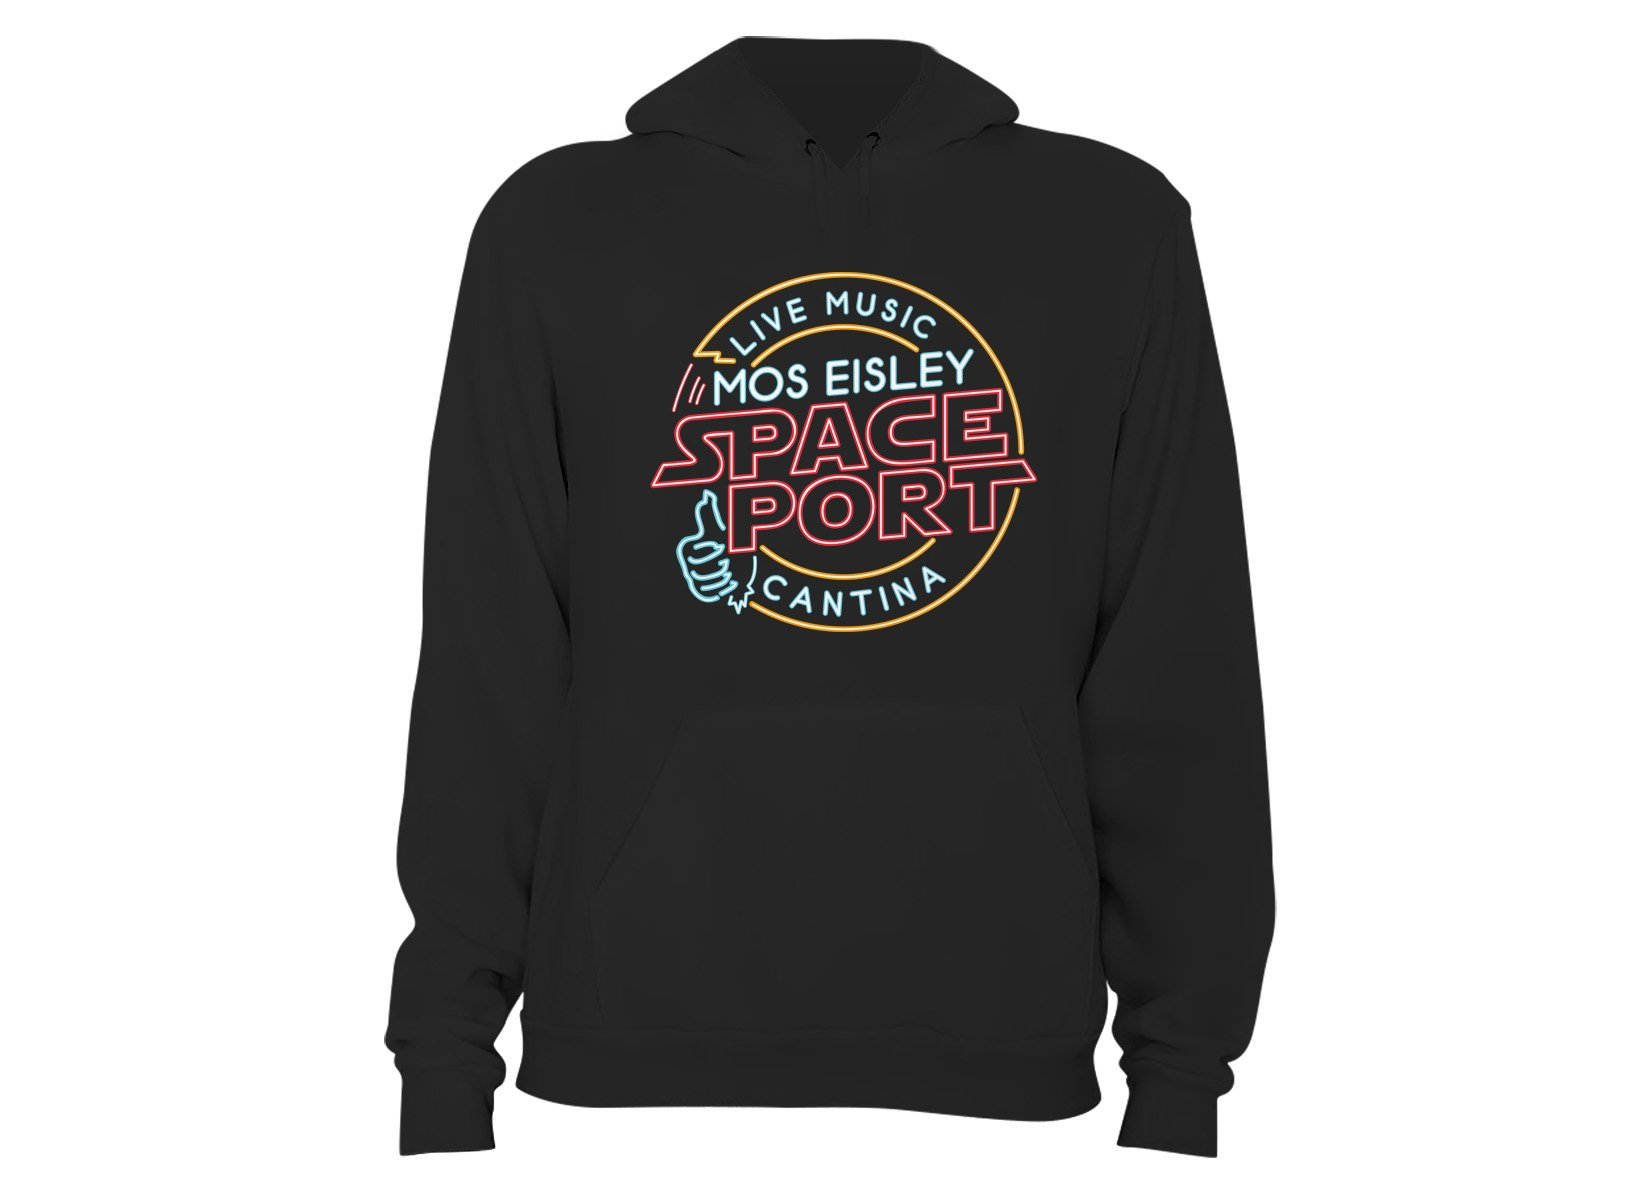 Mos Eisley Space Port on Hoodie